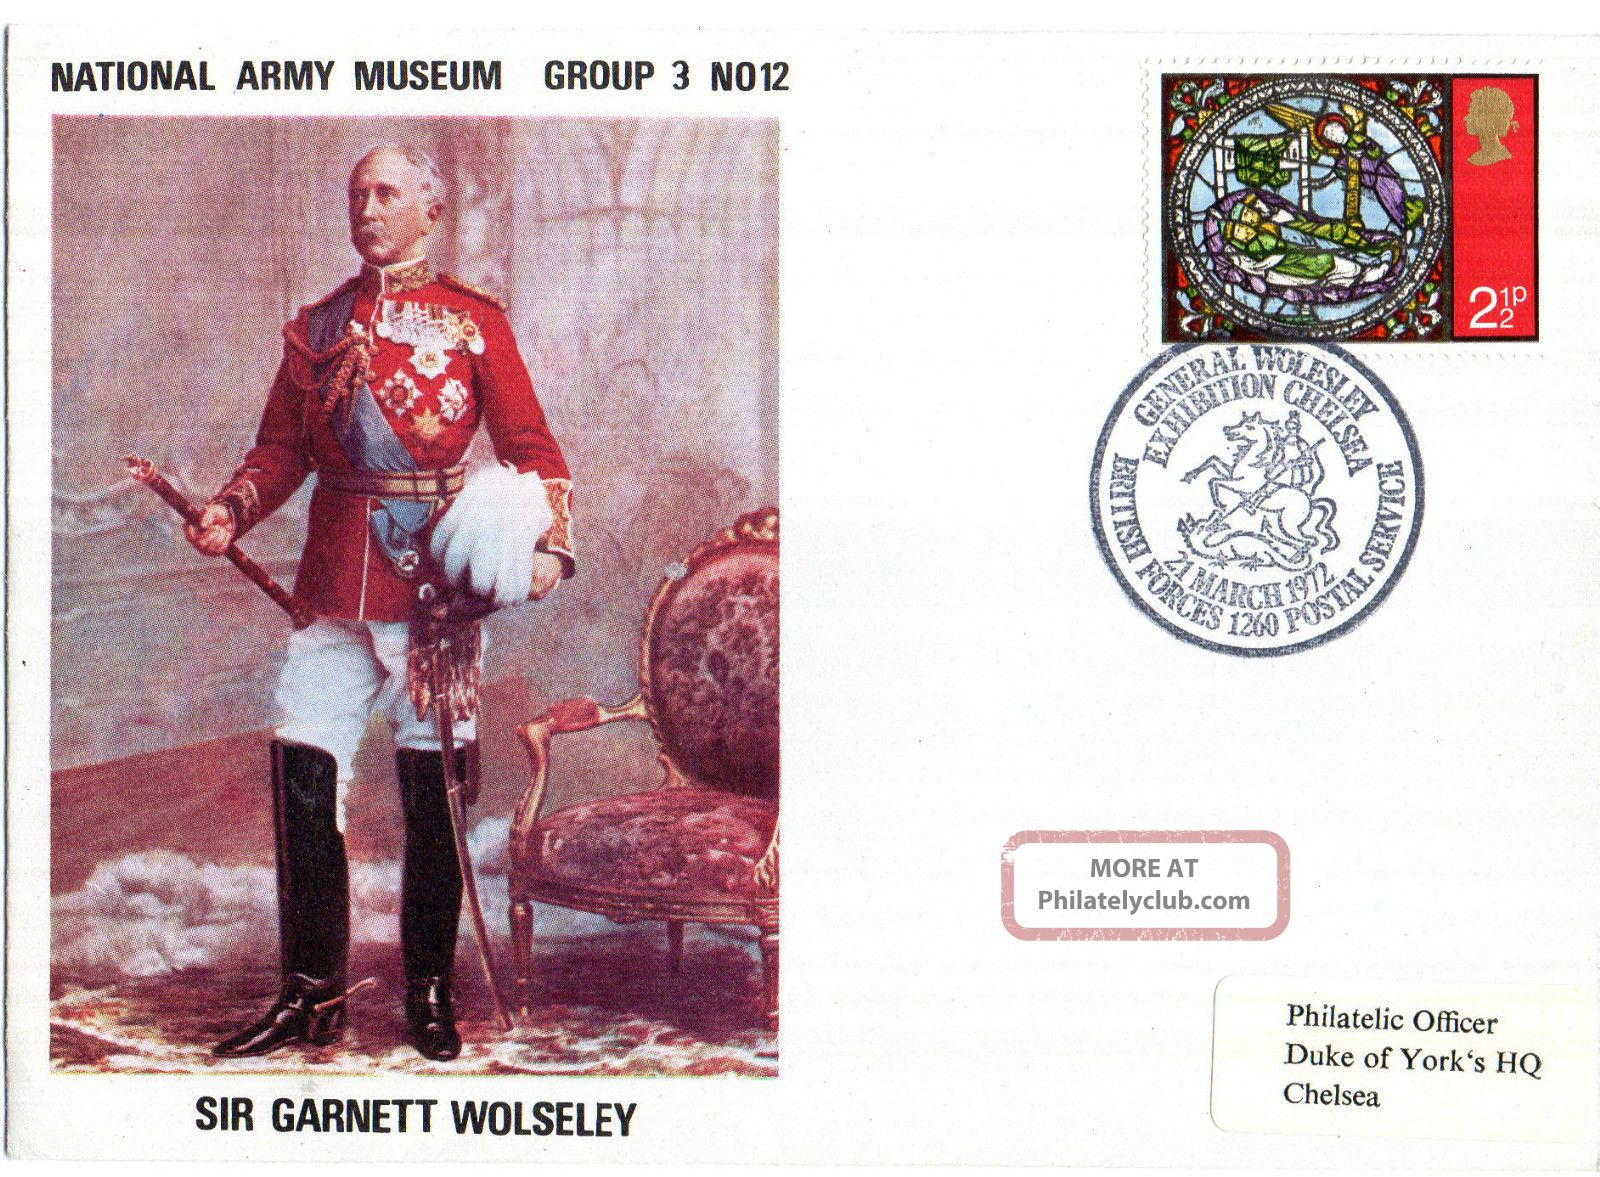 1972 Sir Garnett Wolseley 3/12 Army Museum Commemorative Cover Shs Topical Stamps photo